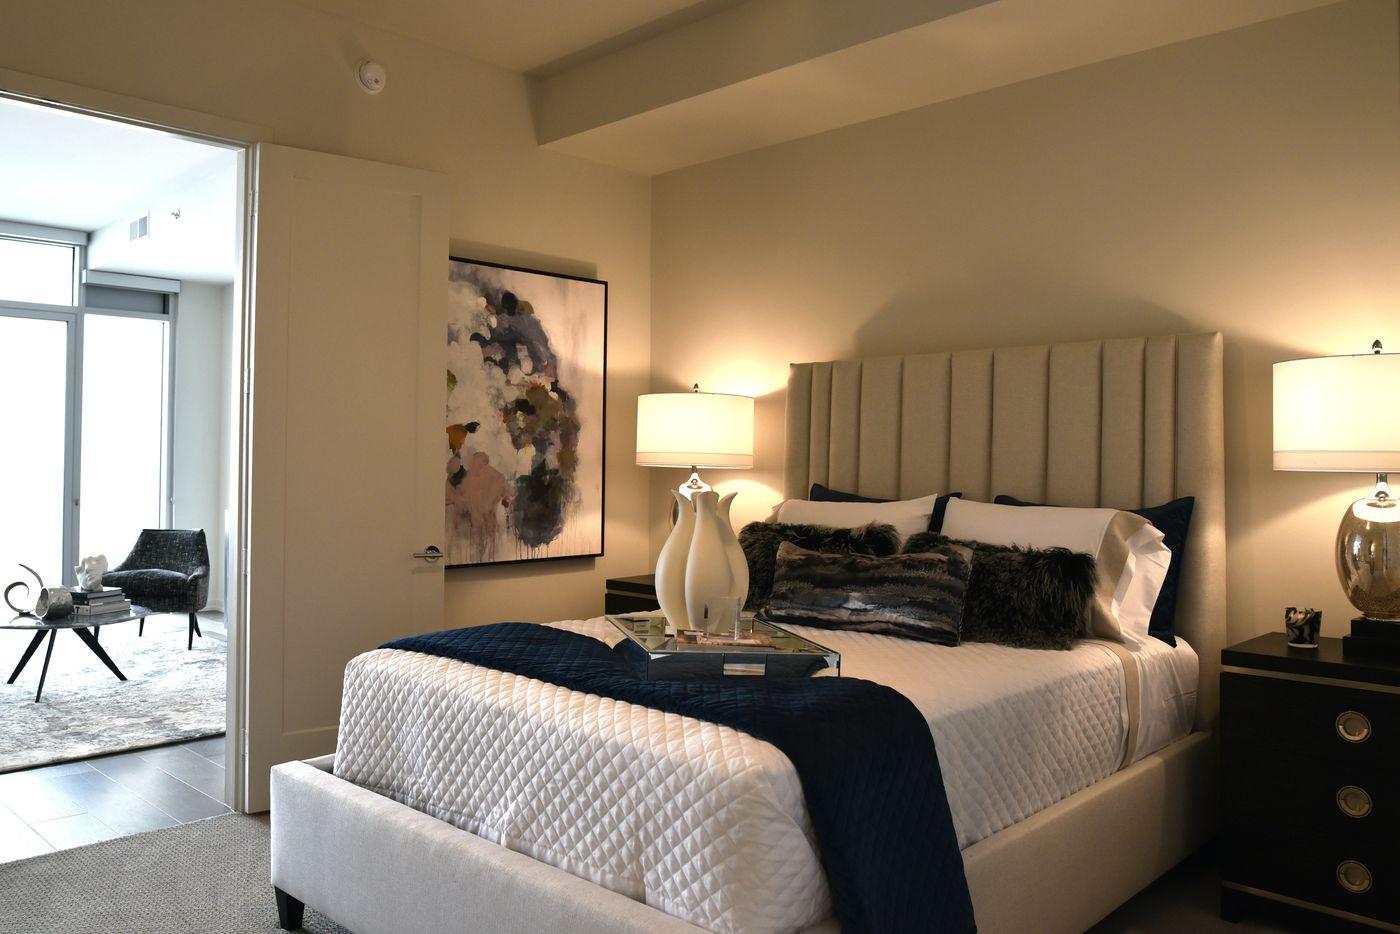 The bedroom of a model one bedroom apartment at the Twelve Cowboys Way luxury residential tower at the Star in Frisco.